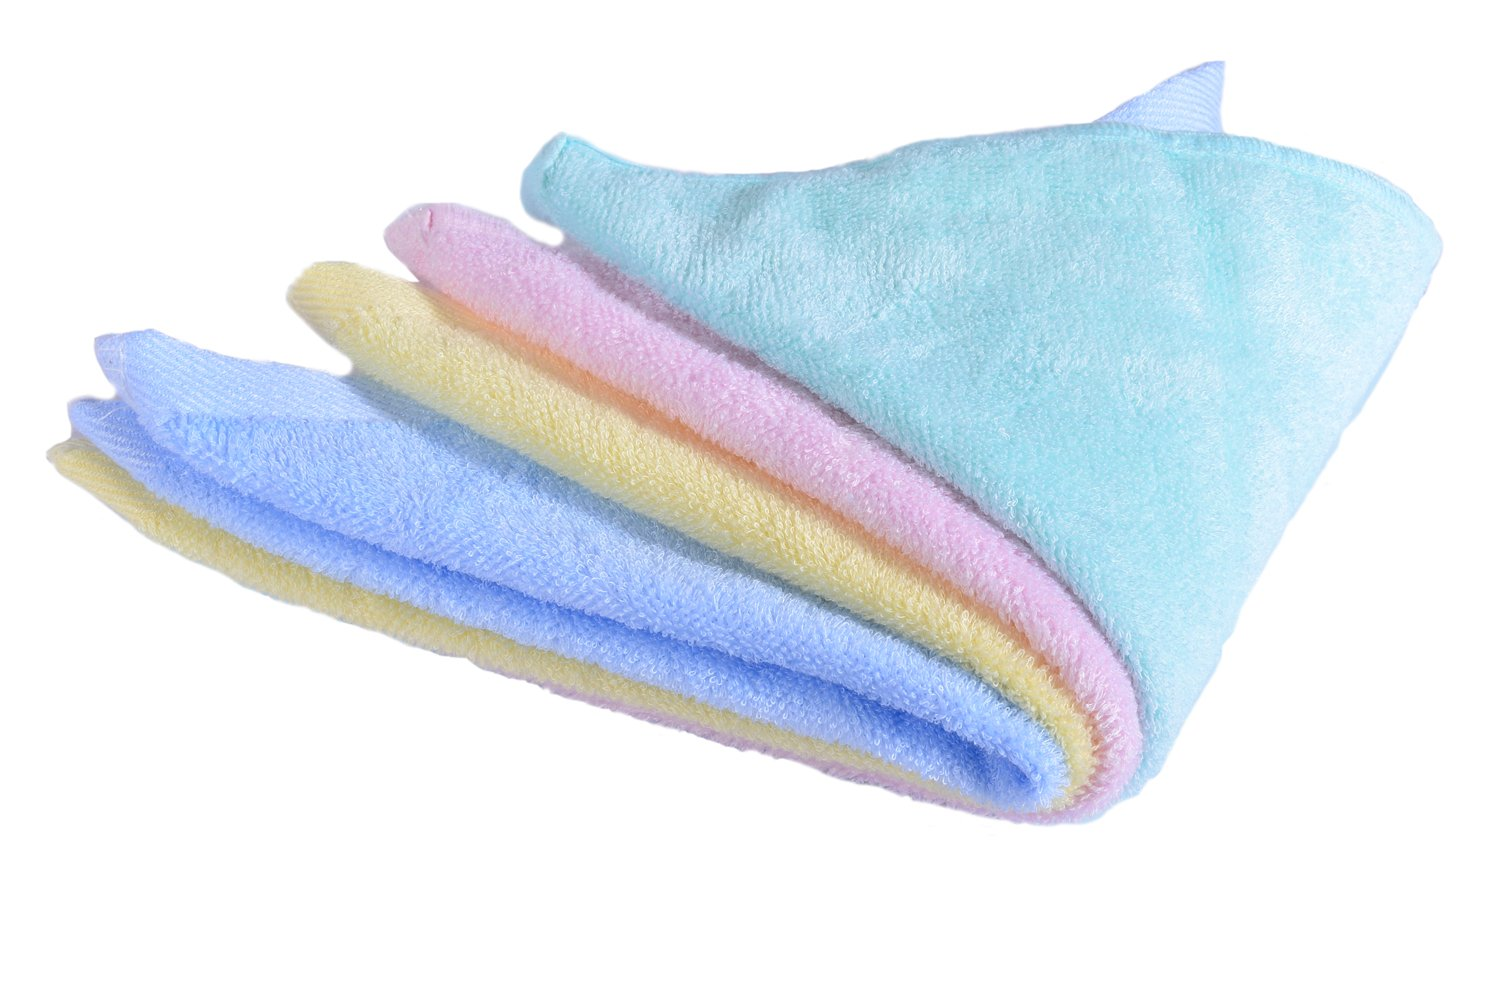 CaLeQi Pack of 4 Mixed Colour-Soft Face Towels, Soft Newborn Baby Face Towel (11.8x11.8) zumianjin